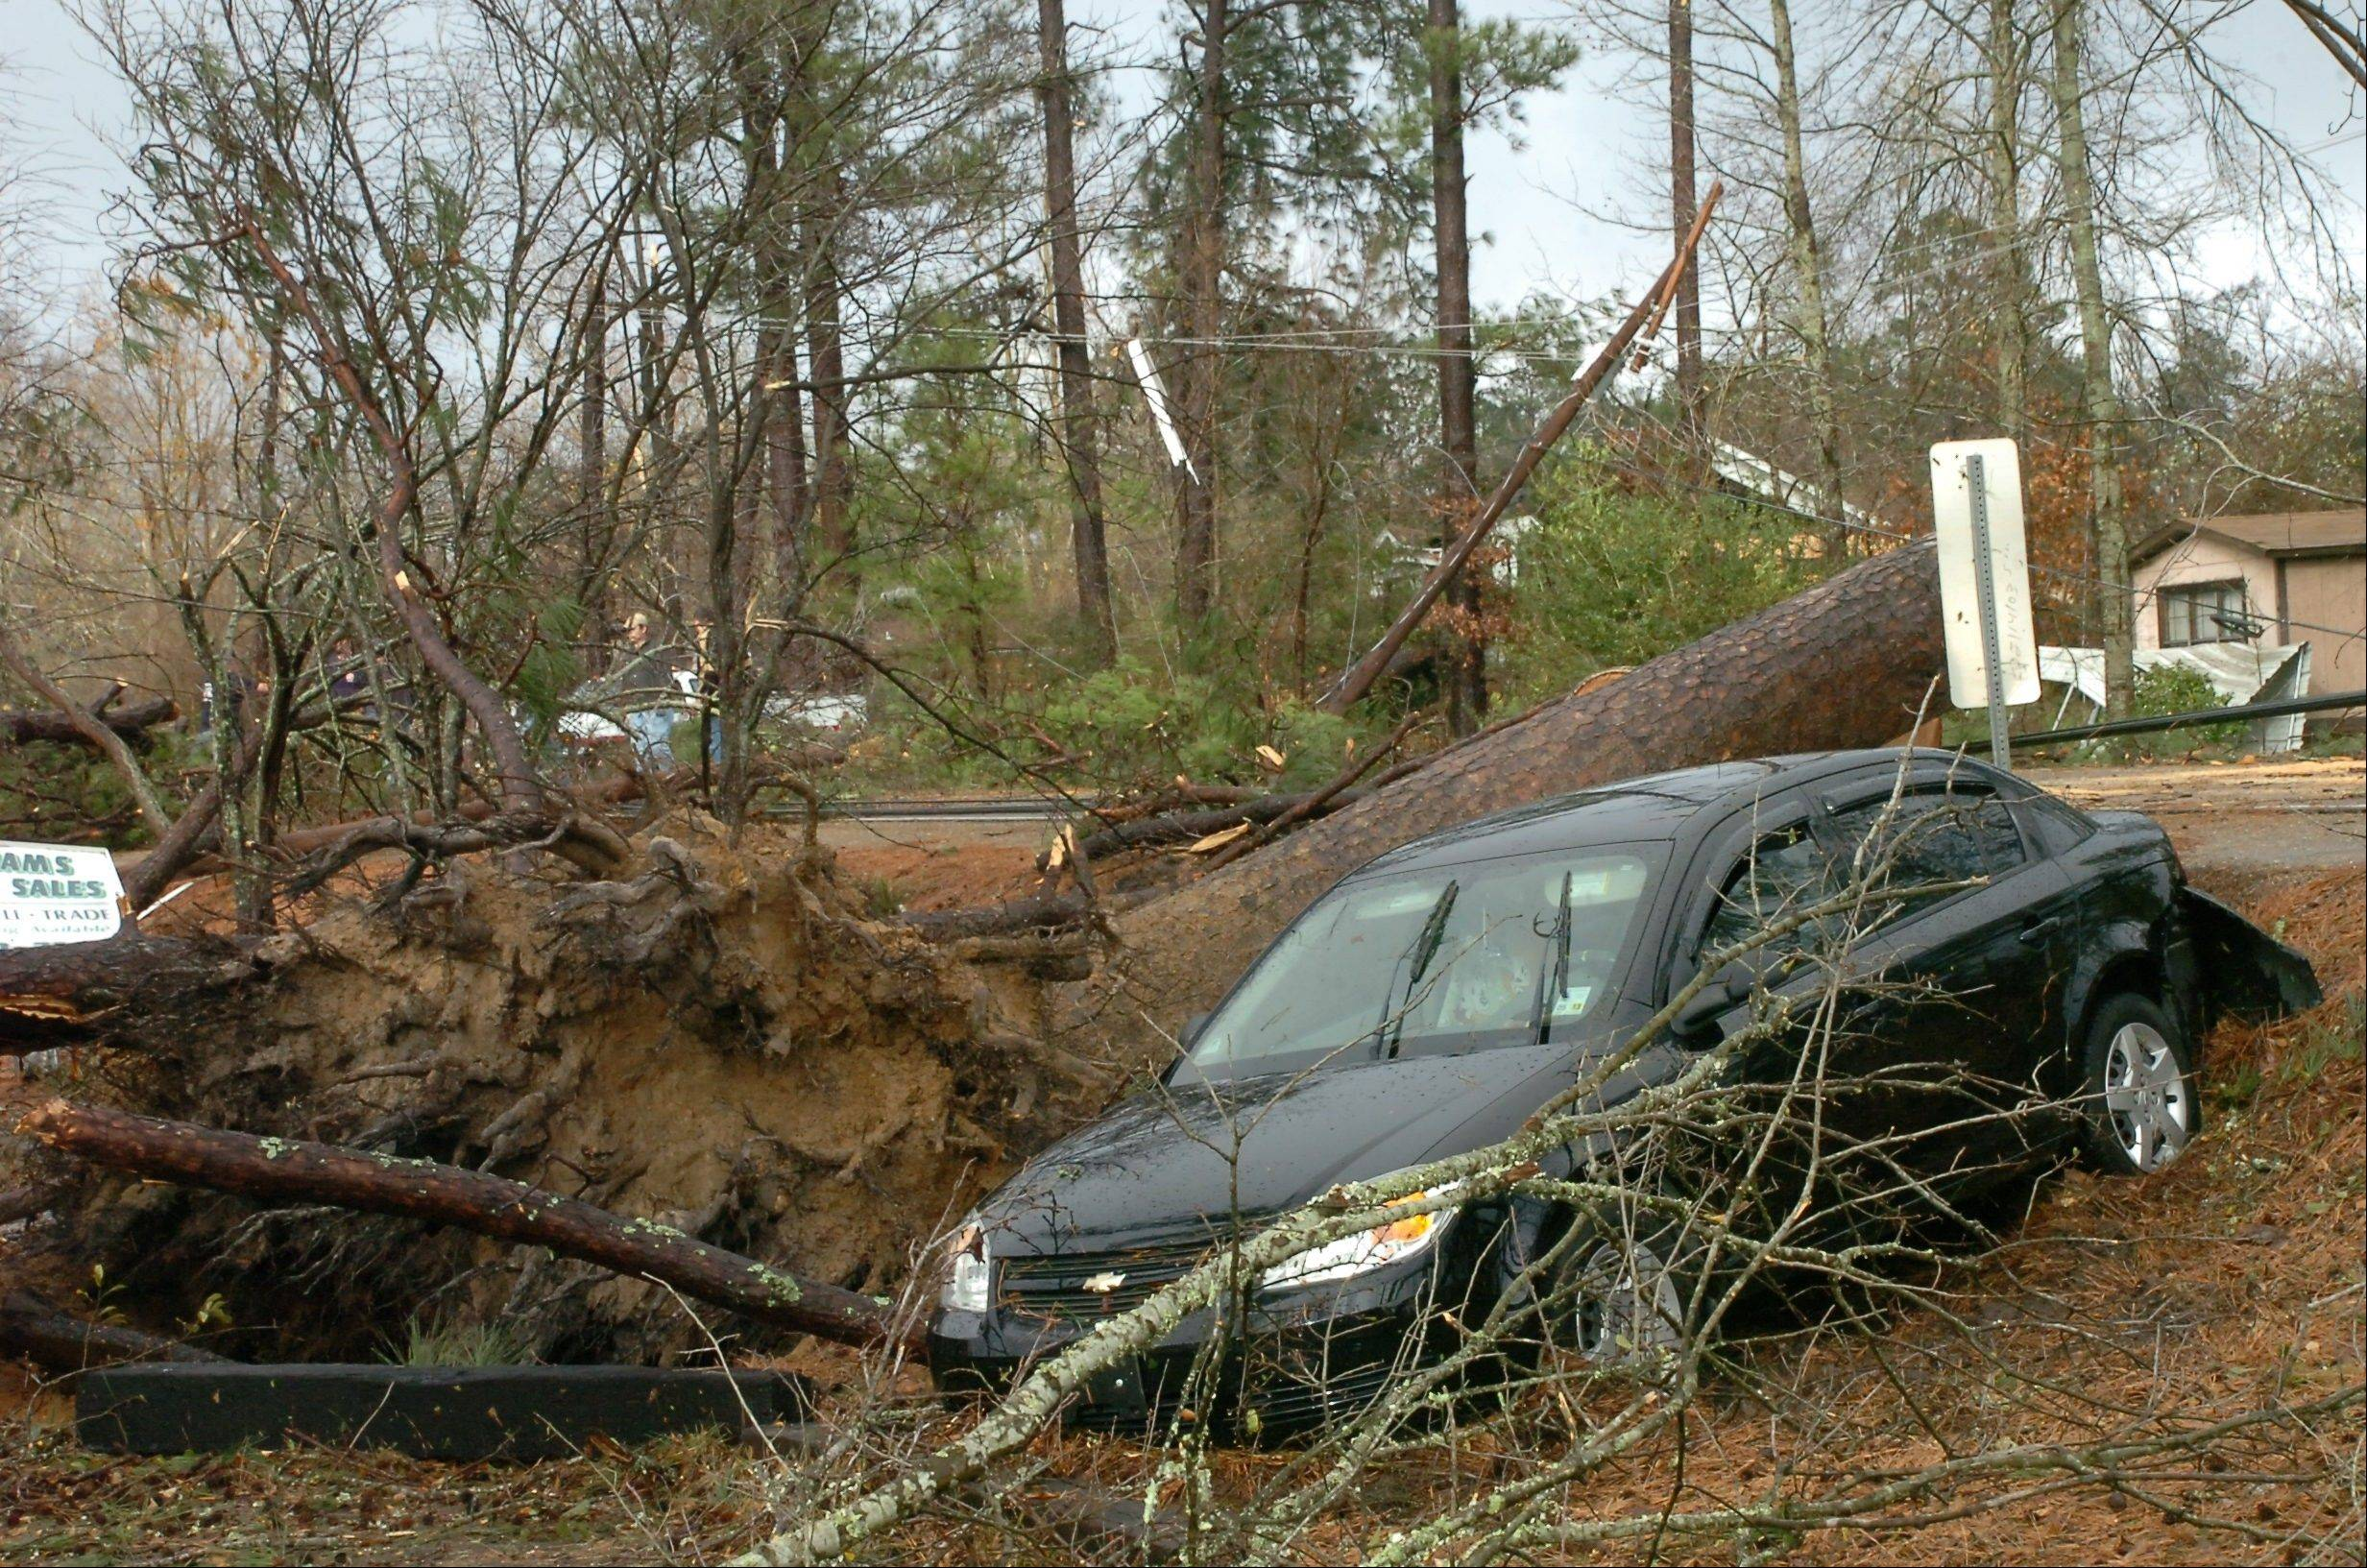 Geraldine Pedersen and her dog Marlow were in her car traveling down U.S. 71 in the Tioga, Louisiana area when a tree fell down in front of the car and a wind knocked her car into a yard, Tuesday, Dec. 25, 2012. A tornado through the Central Louisiana area.